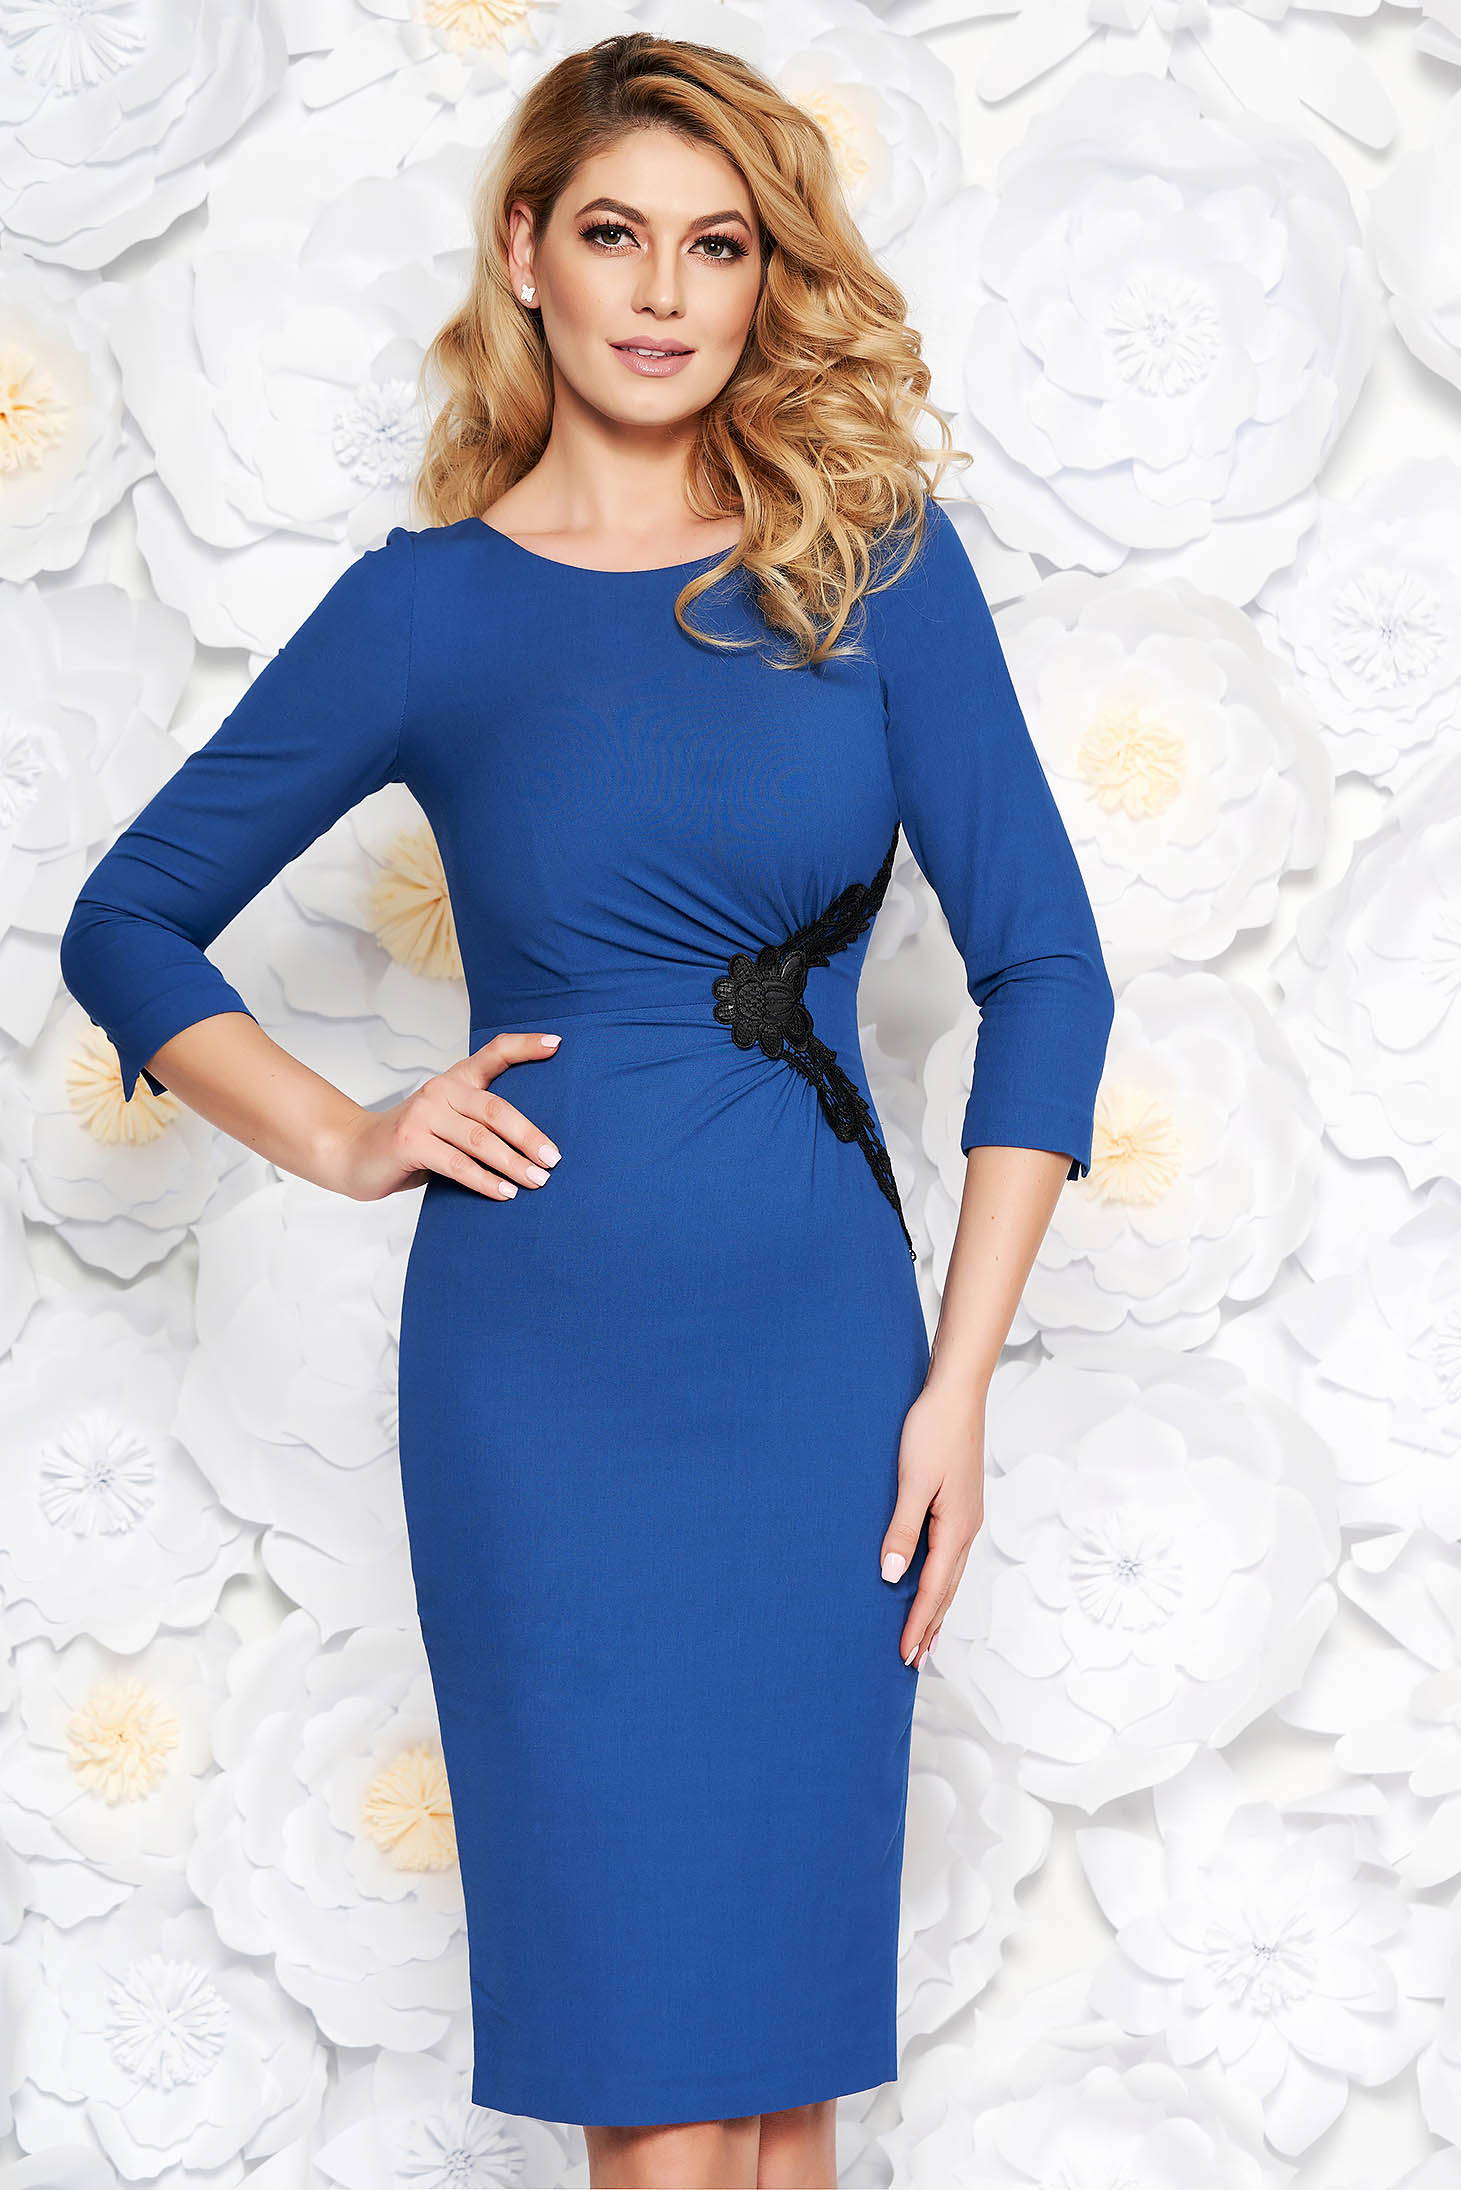 Blue elegant midi pencil dress soft fabric with inside lining with lace details